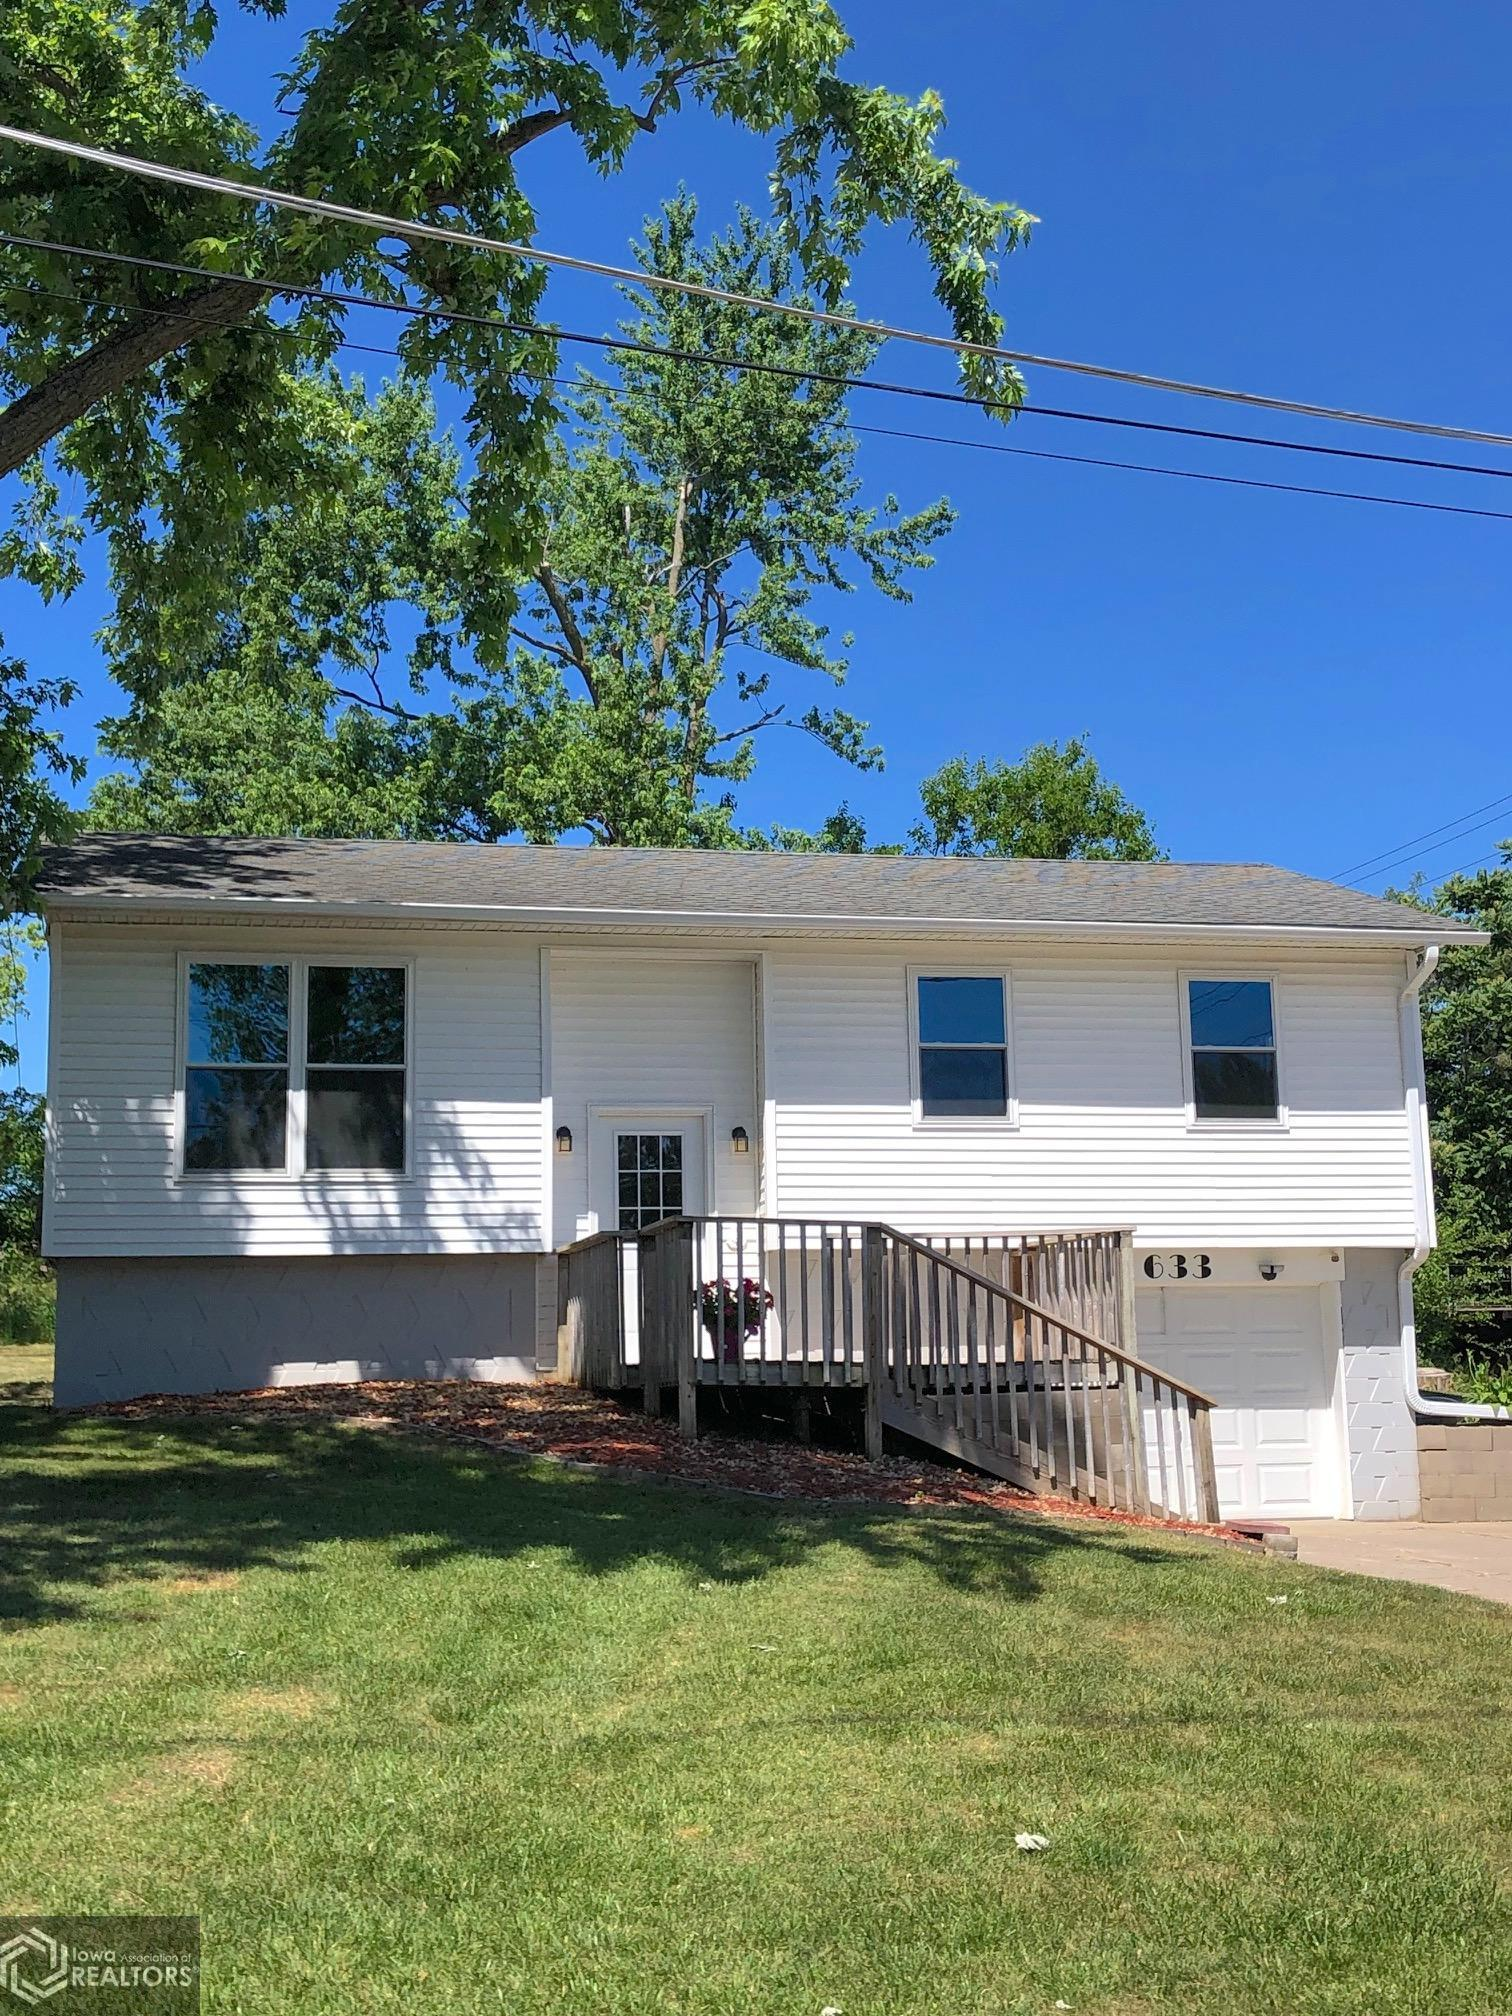 633 State, Grinnell, Iowa 50112-3012, 3 Bedrooms Bedrooms, ,1 BathroomBathrooms,Single Family,For Sale,State,6012063